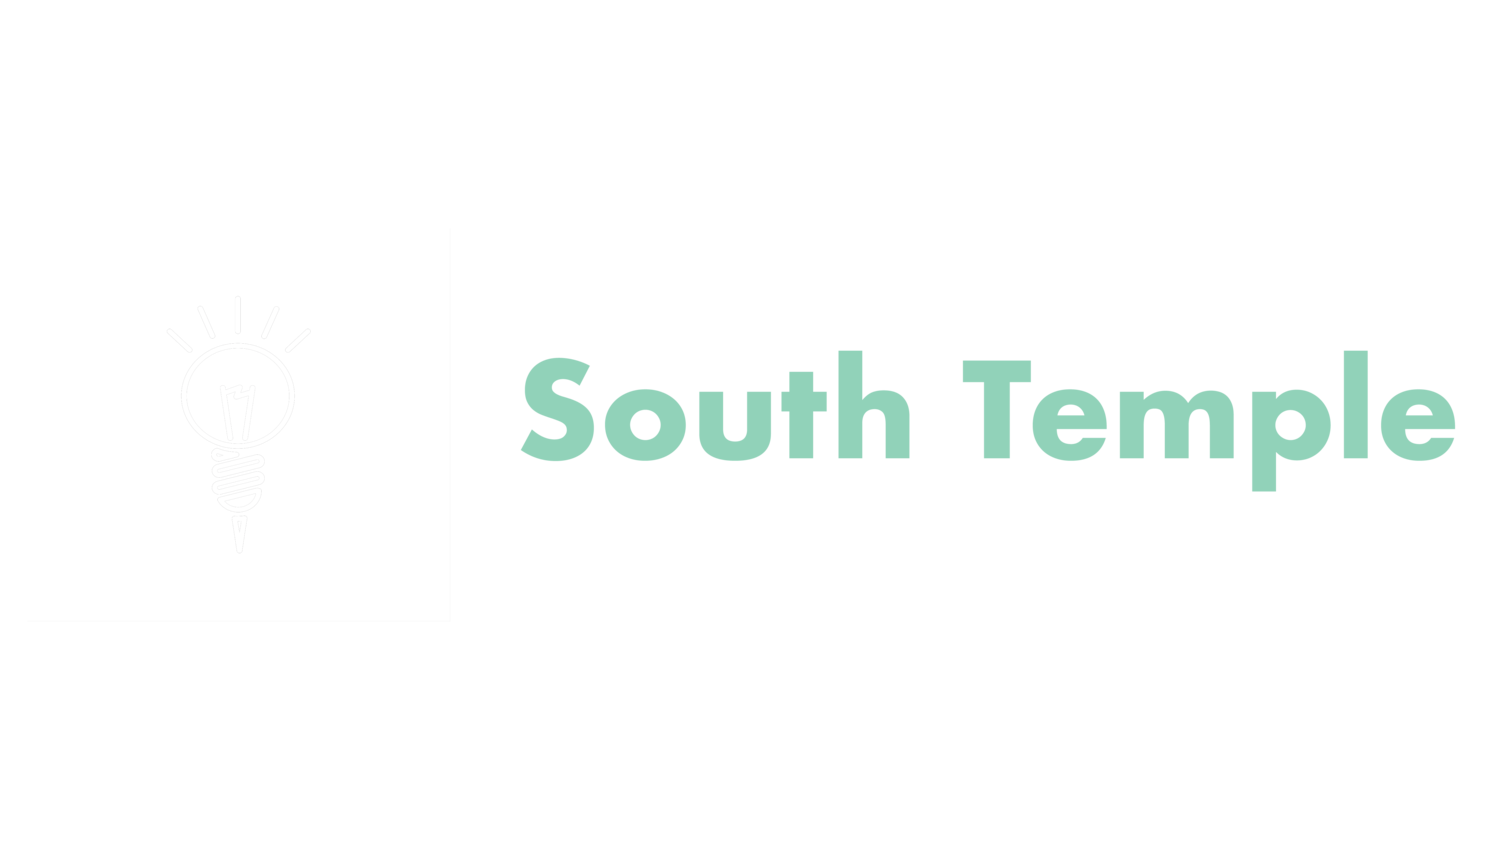 South Temple Storage Solutions